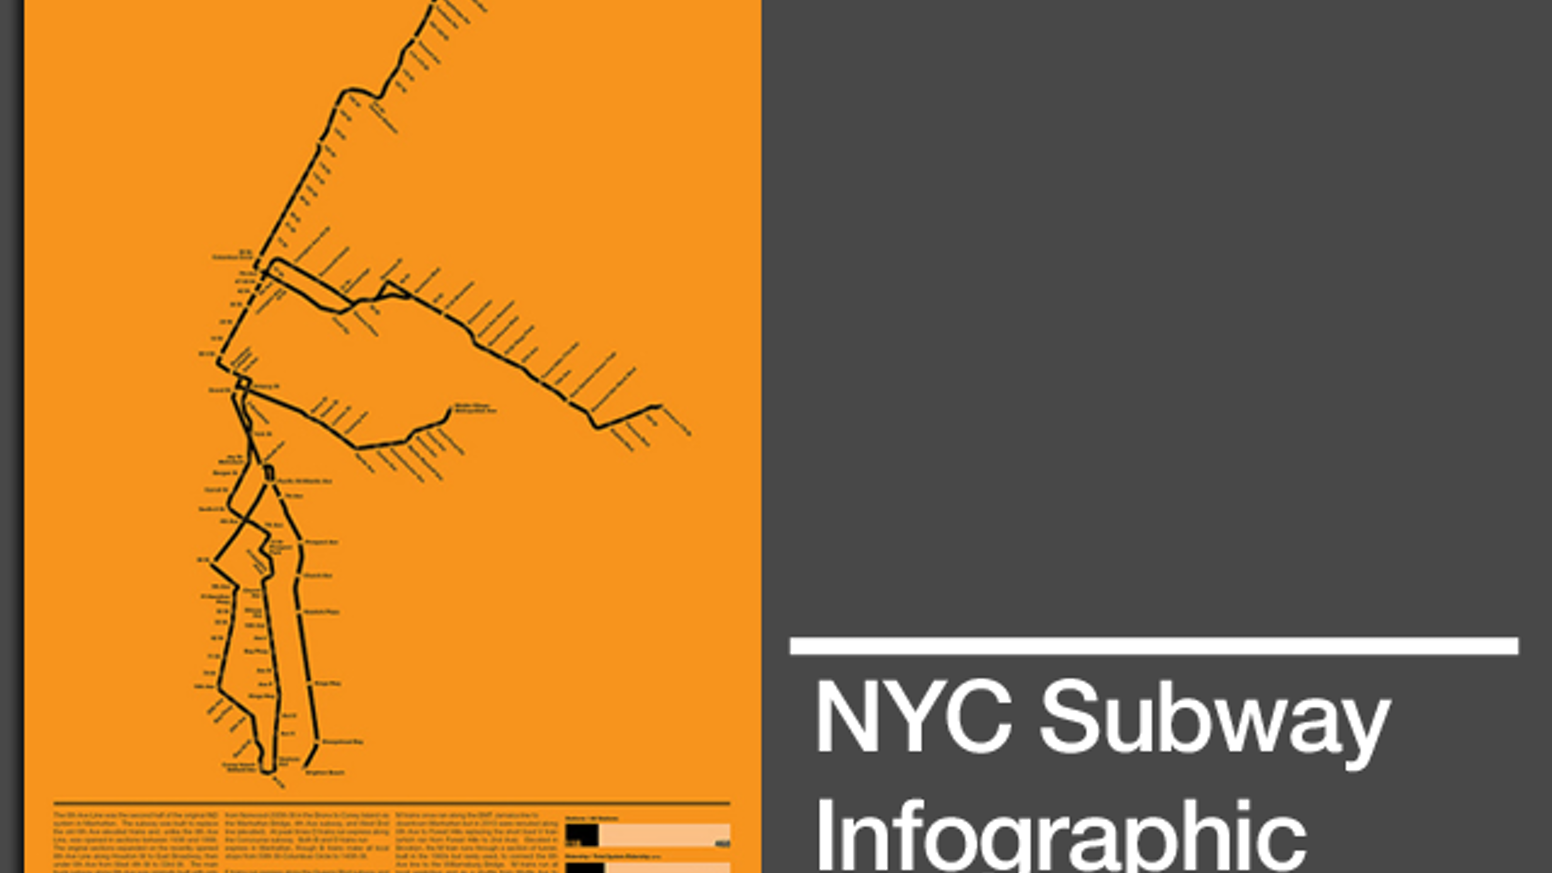 Bdfm Subway Map.Nyc Subway Infographic Posters By Andrew Lynch Kickstarter